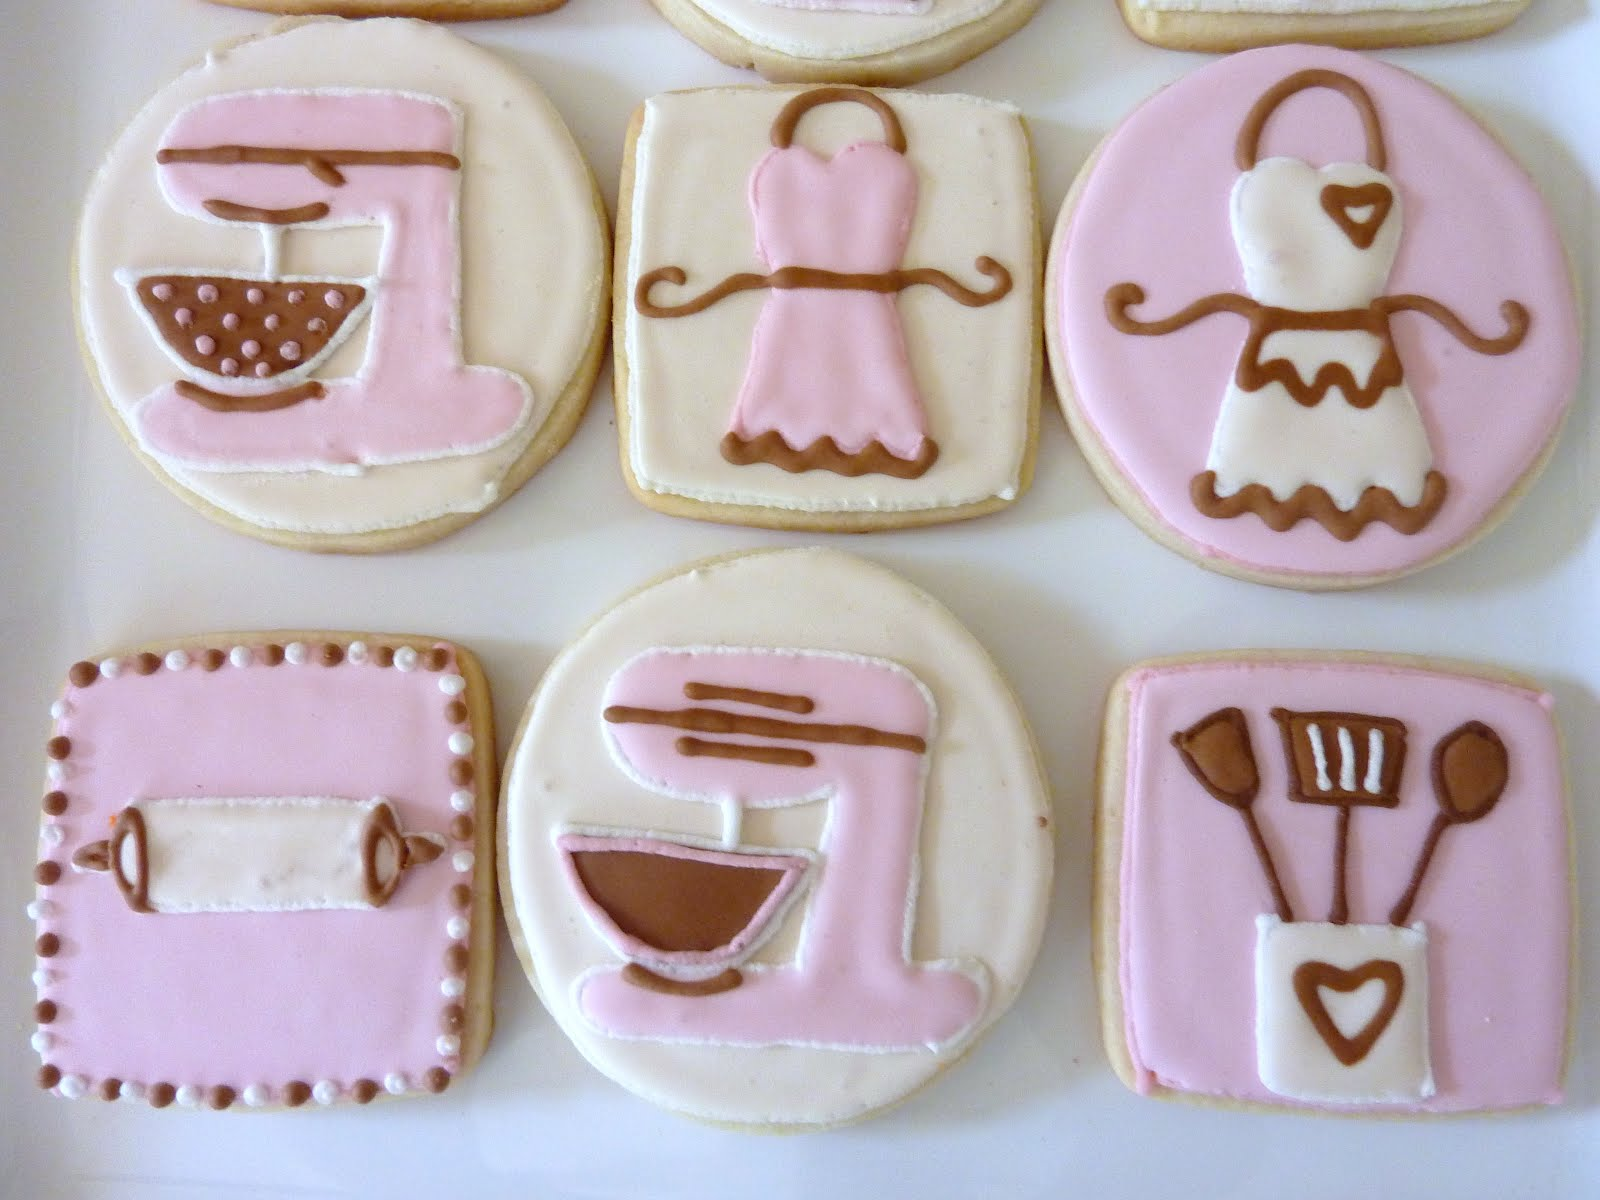 Kitchen Themed Bridal Shower Cutthroat Game The Happy Caker Cookies